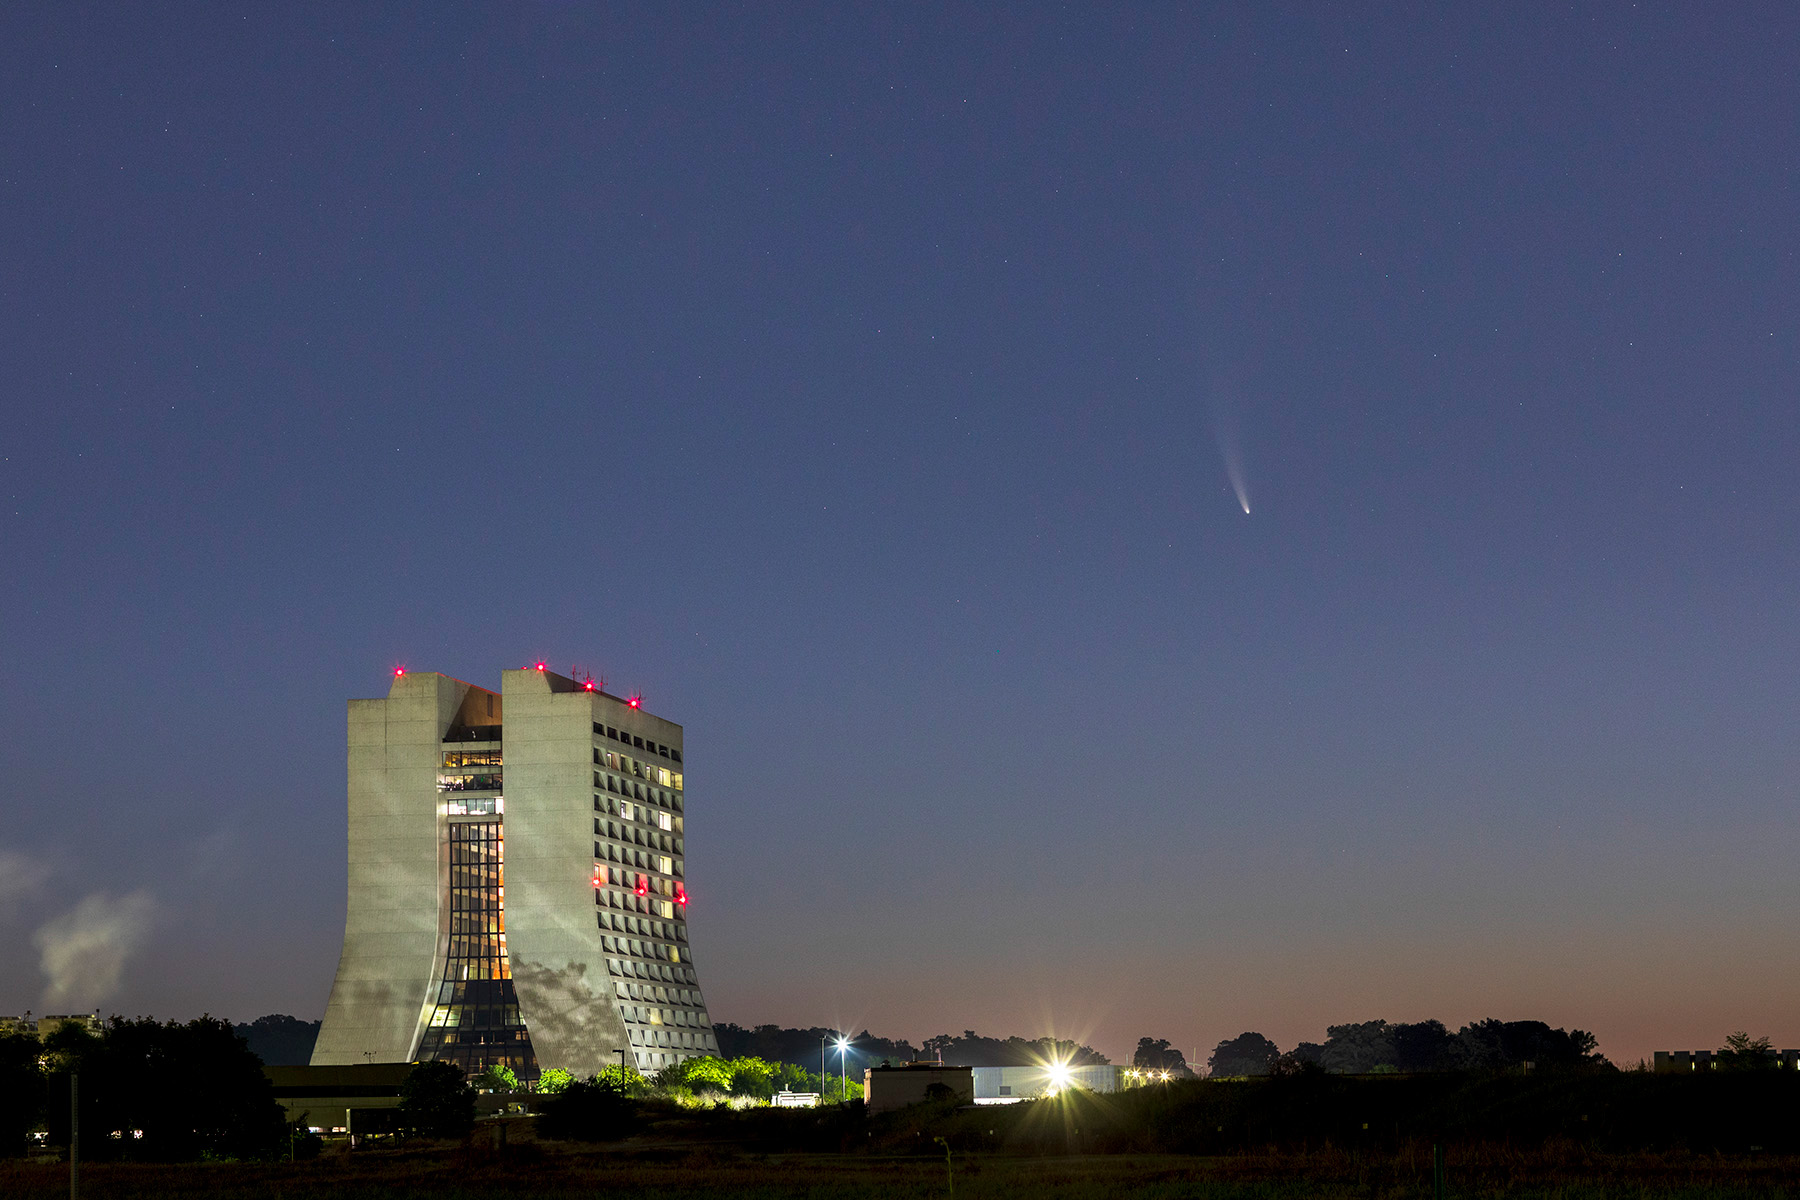 Comet NEOWISE flies by Wilson Hall early on July 13. nature, sky, night, Wilson Hall, building, comet Photo: Marty Murphy